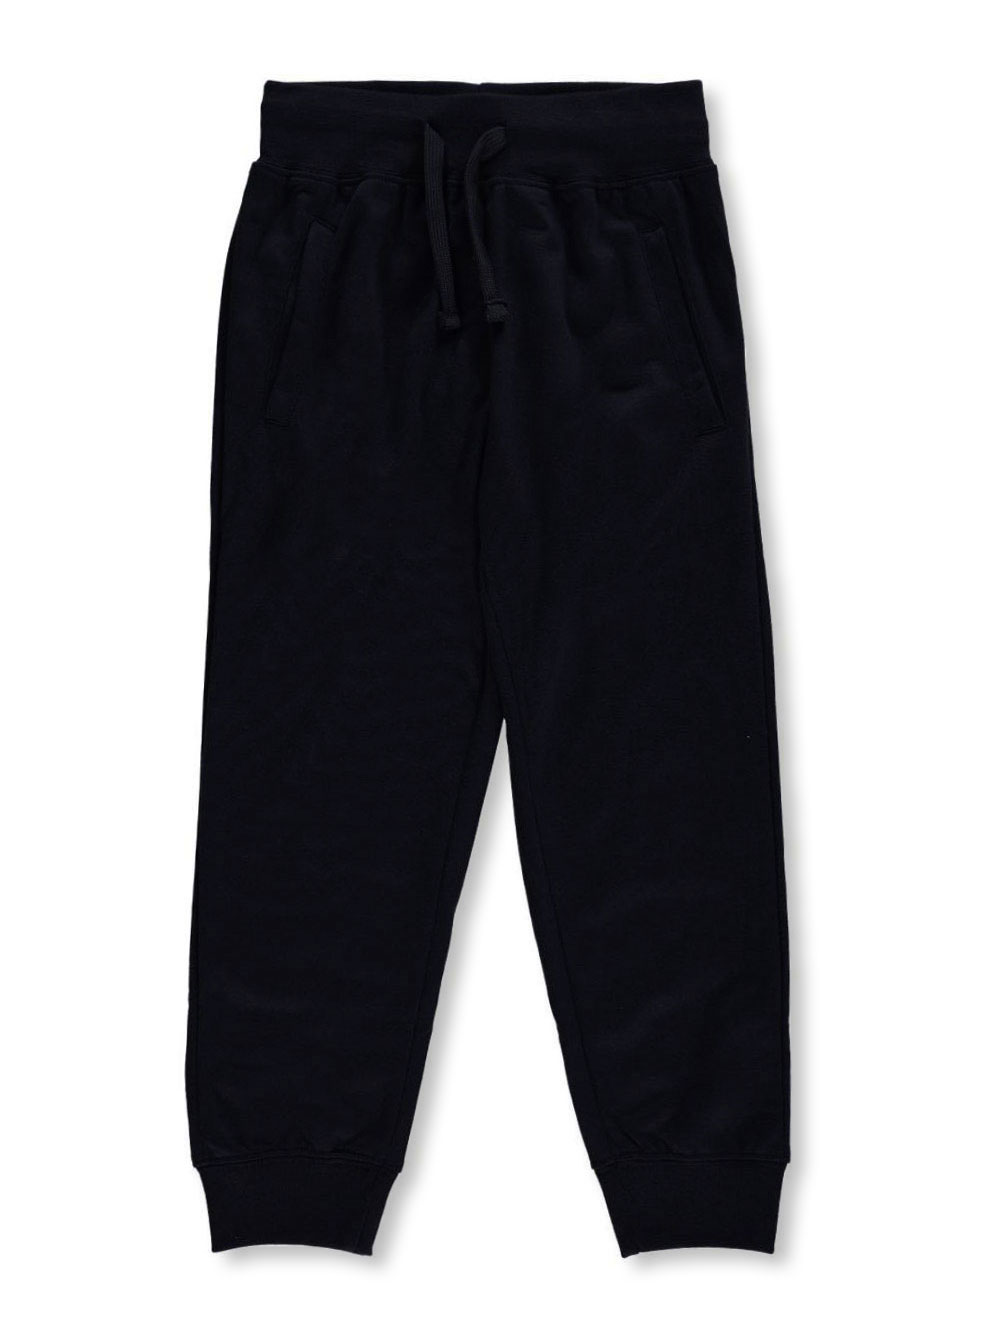 Image of Range Little Boys Classic French Terry Joggers Sizes 4  7  black 4